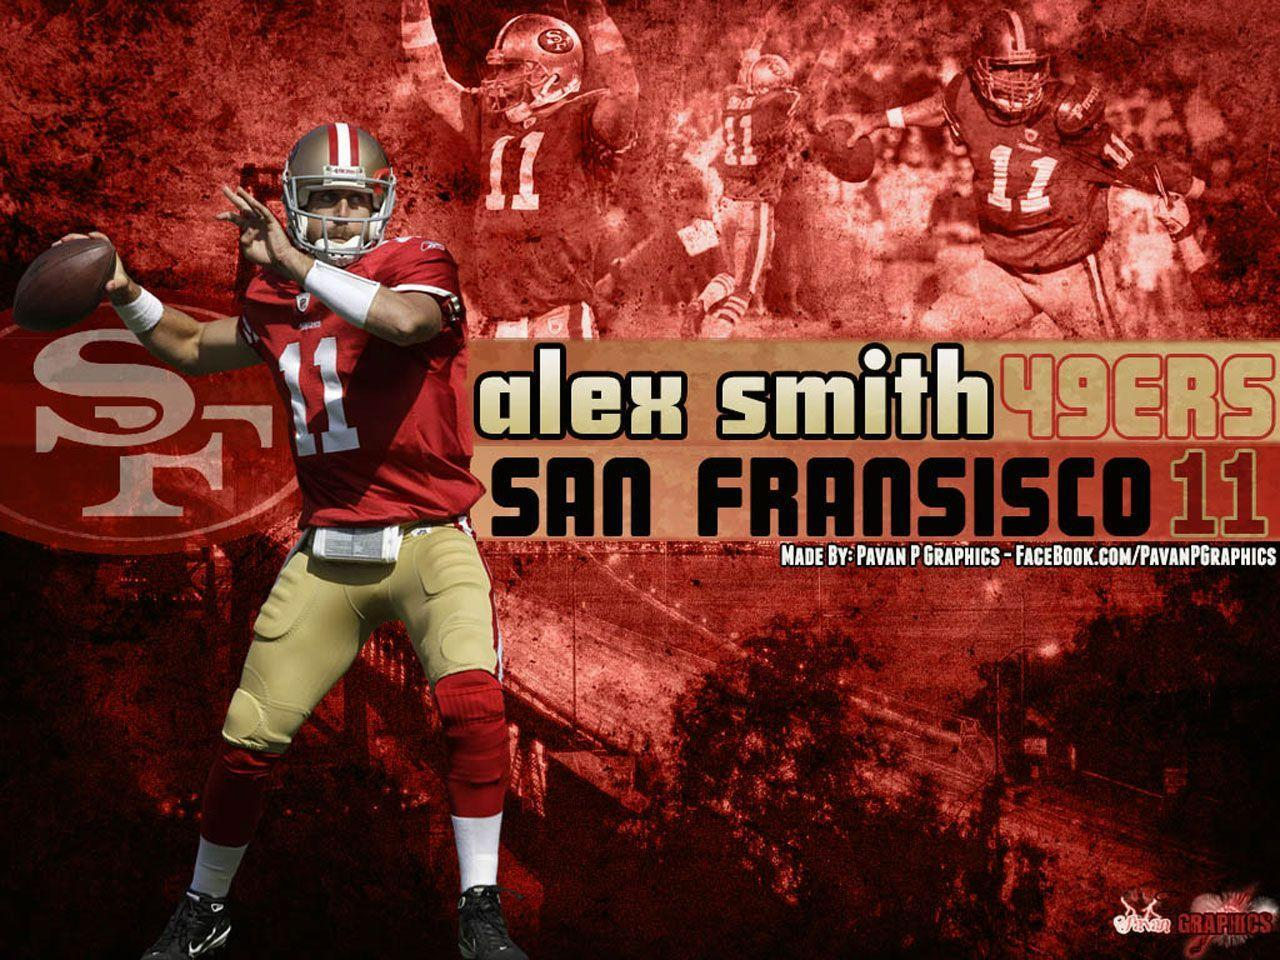 Awesome San Francisco 49ers wallpaper | San Francisco 49ers wallpapers